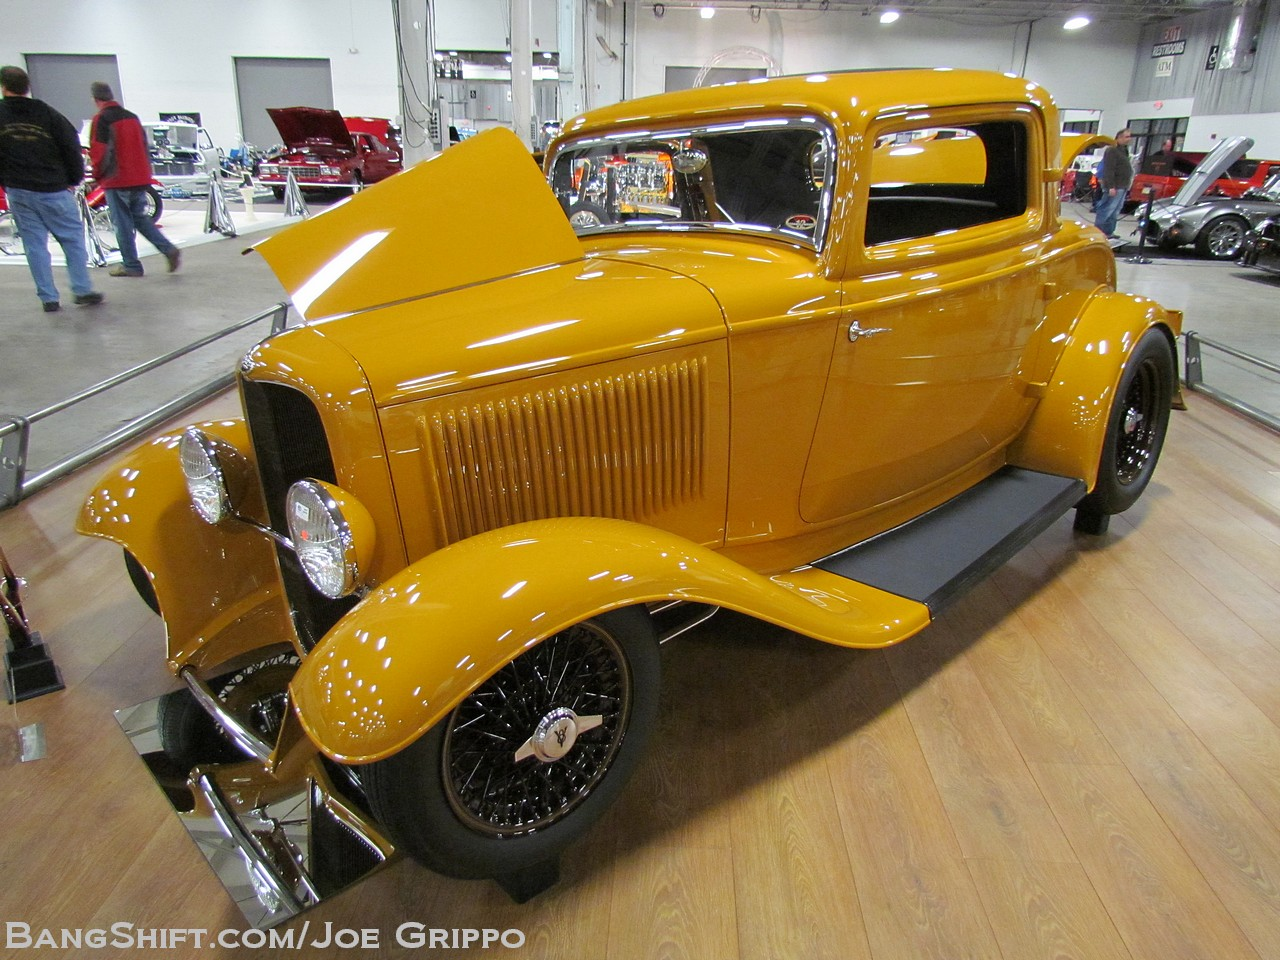 Gallery: The 2013 Northeast Rod and Custom Car Show – Hot Rods, Customs, Bikes, and Weirdos!